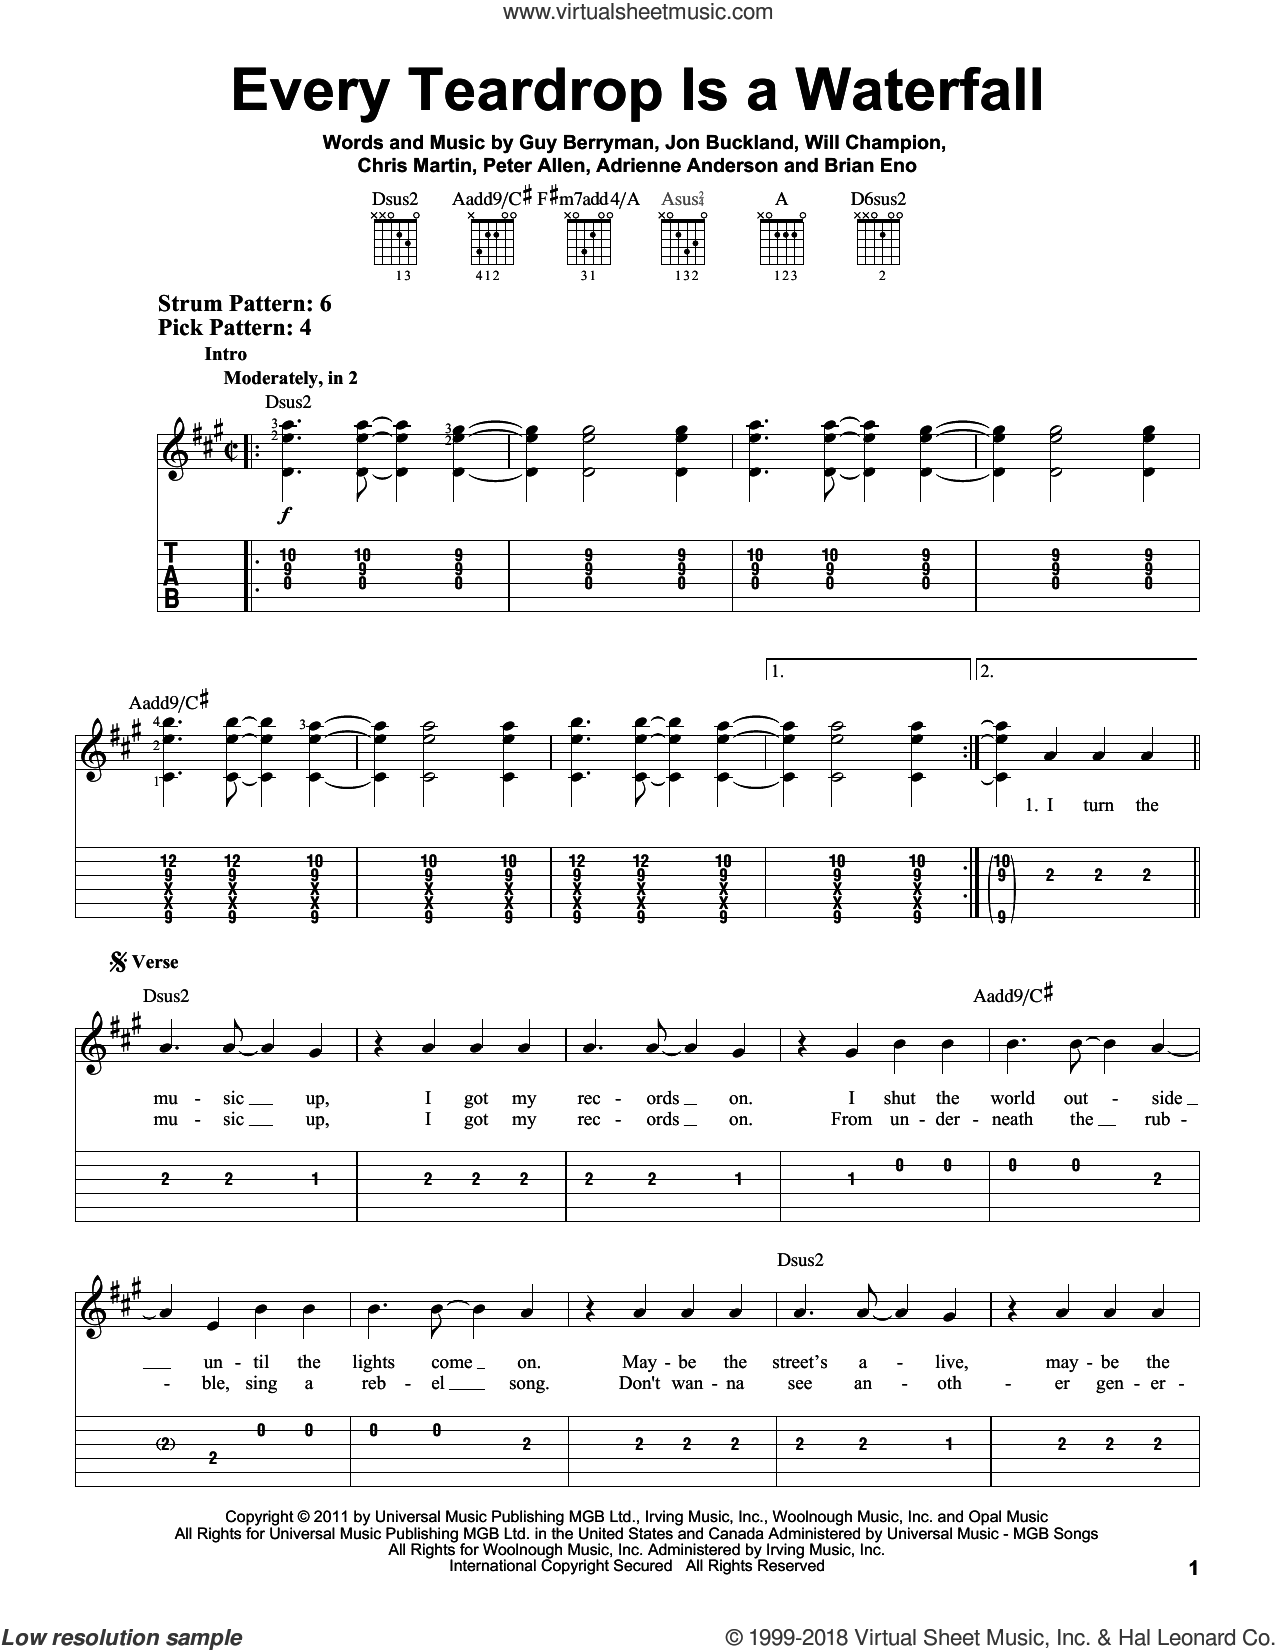 Every Teardrop Is A Waterfall sheet music for guitar solo (easy tablature) by Coldplay, Adrienne Anderson, Brian Eno, Chris Martin, Guy Berryman, Jon Buckland, Peter Allen and Will Champion, easy guitar (easy tablature)